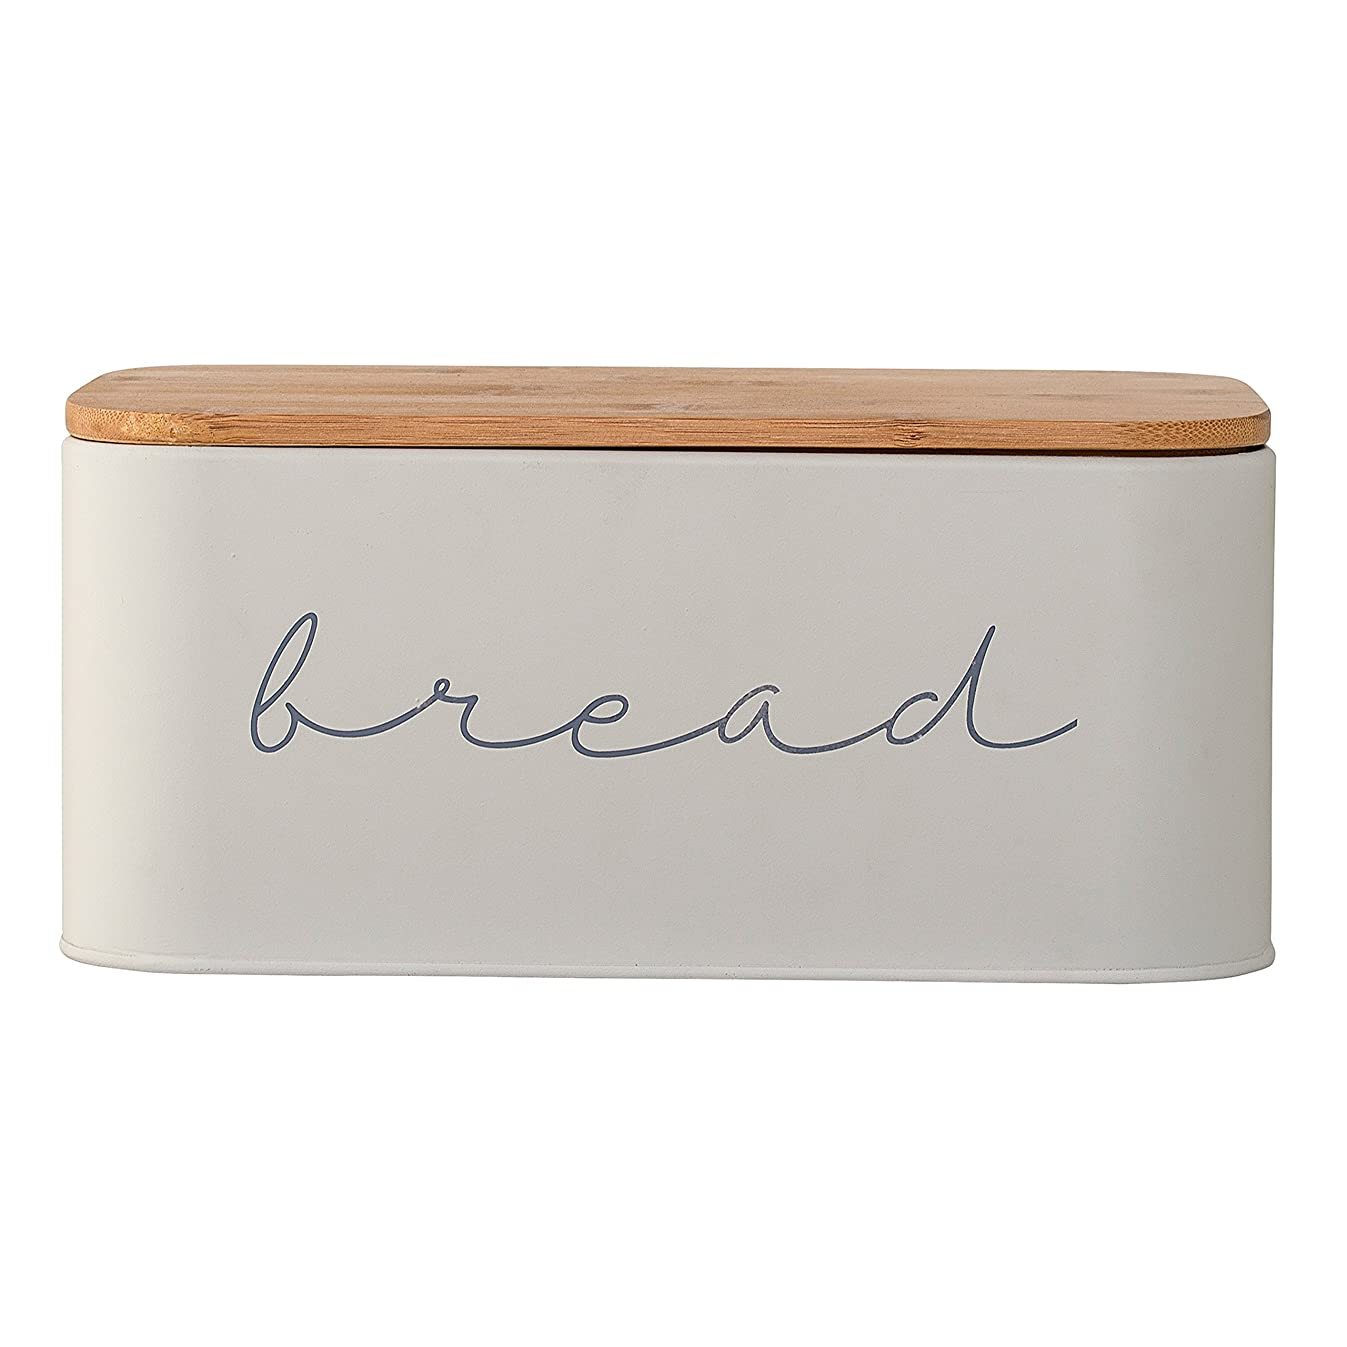 Bloomingville A97306650 Metal Bread Bin With Bamboo Lid, 11.75